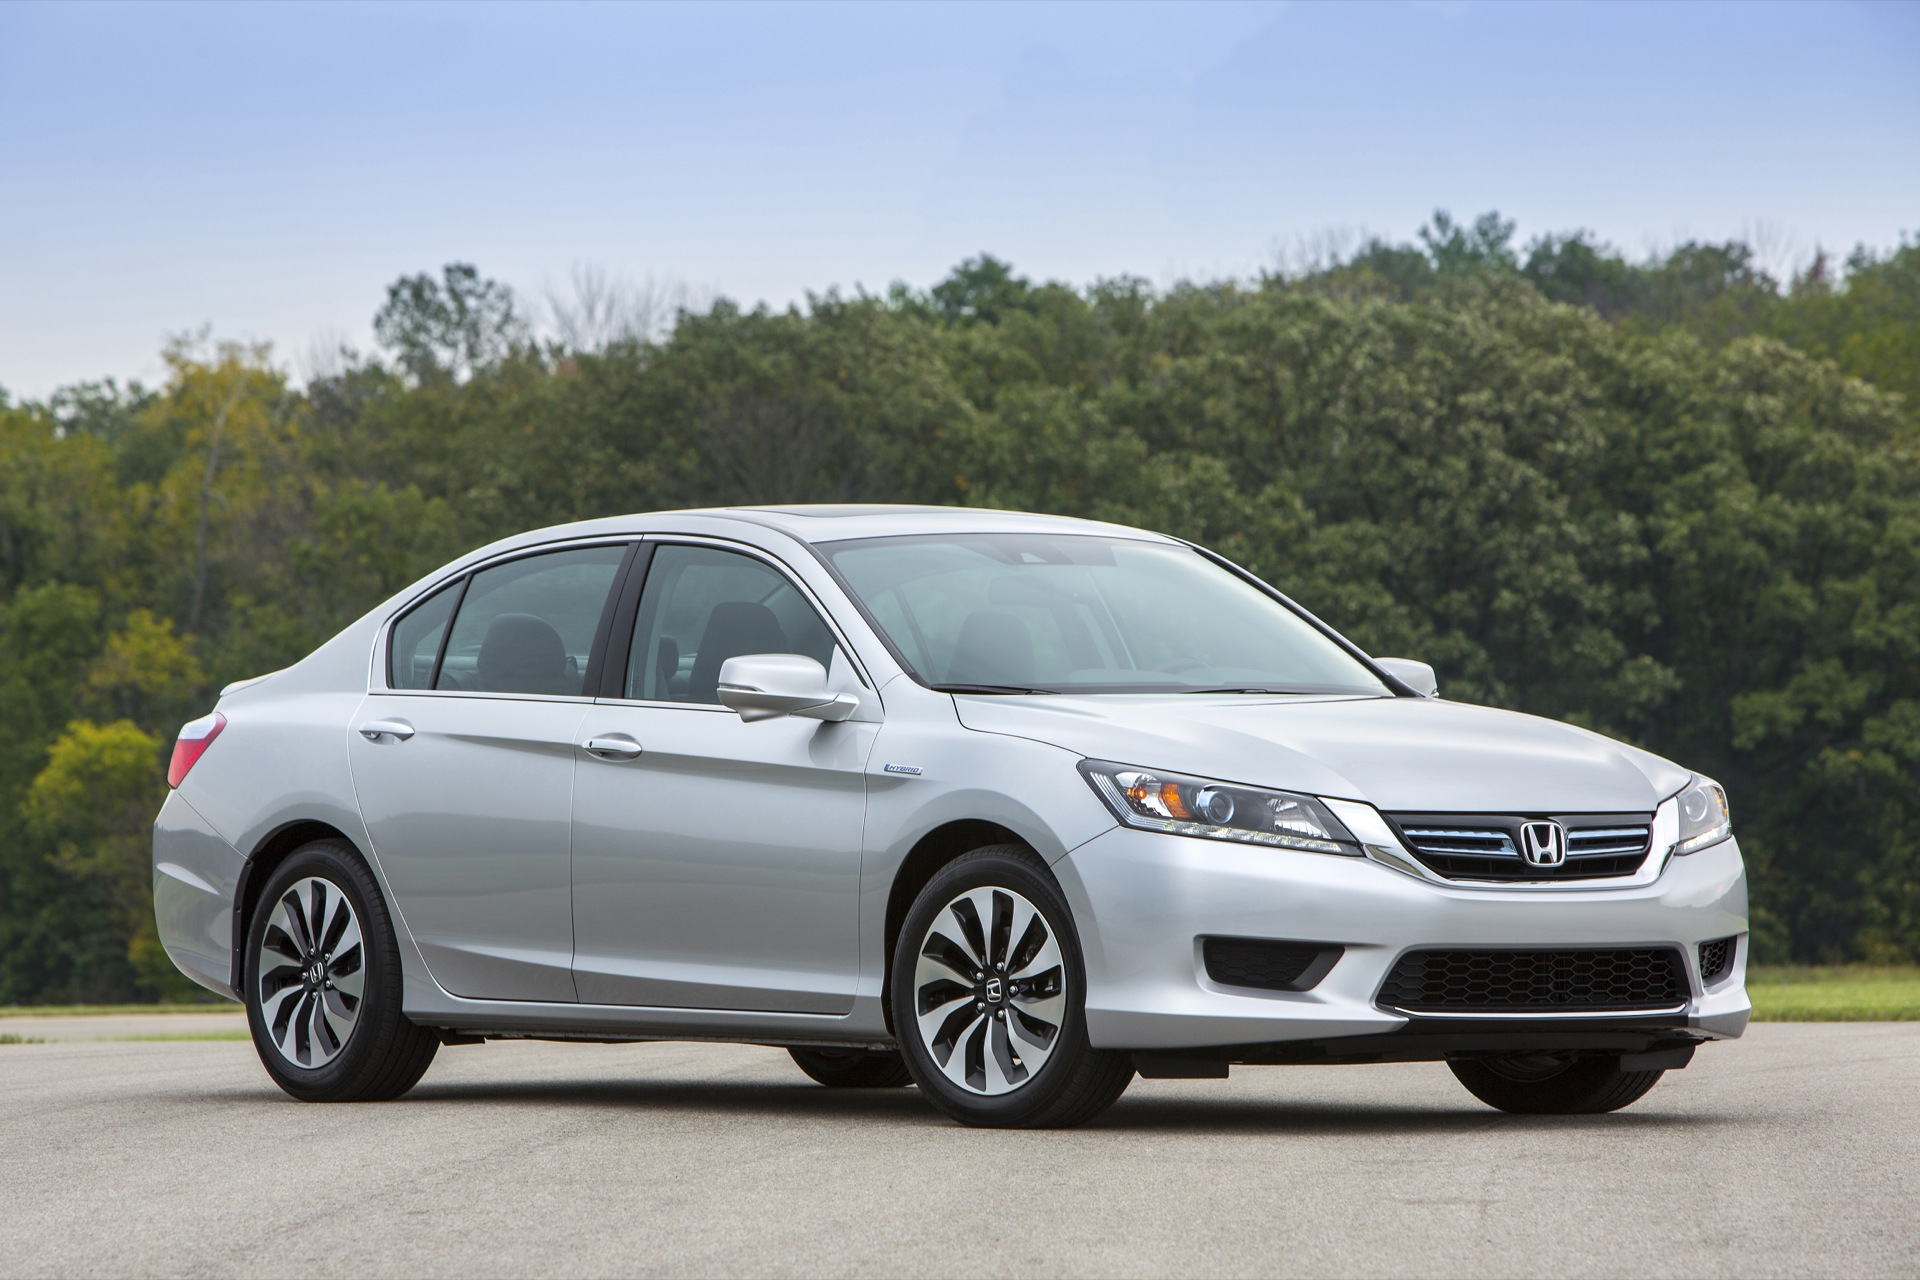 toyota camry vs honda accord compare cars. Black Bedroom Furniture Sets. Home Design Ideas